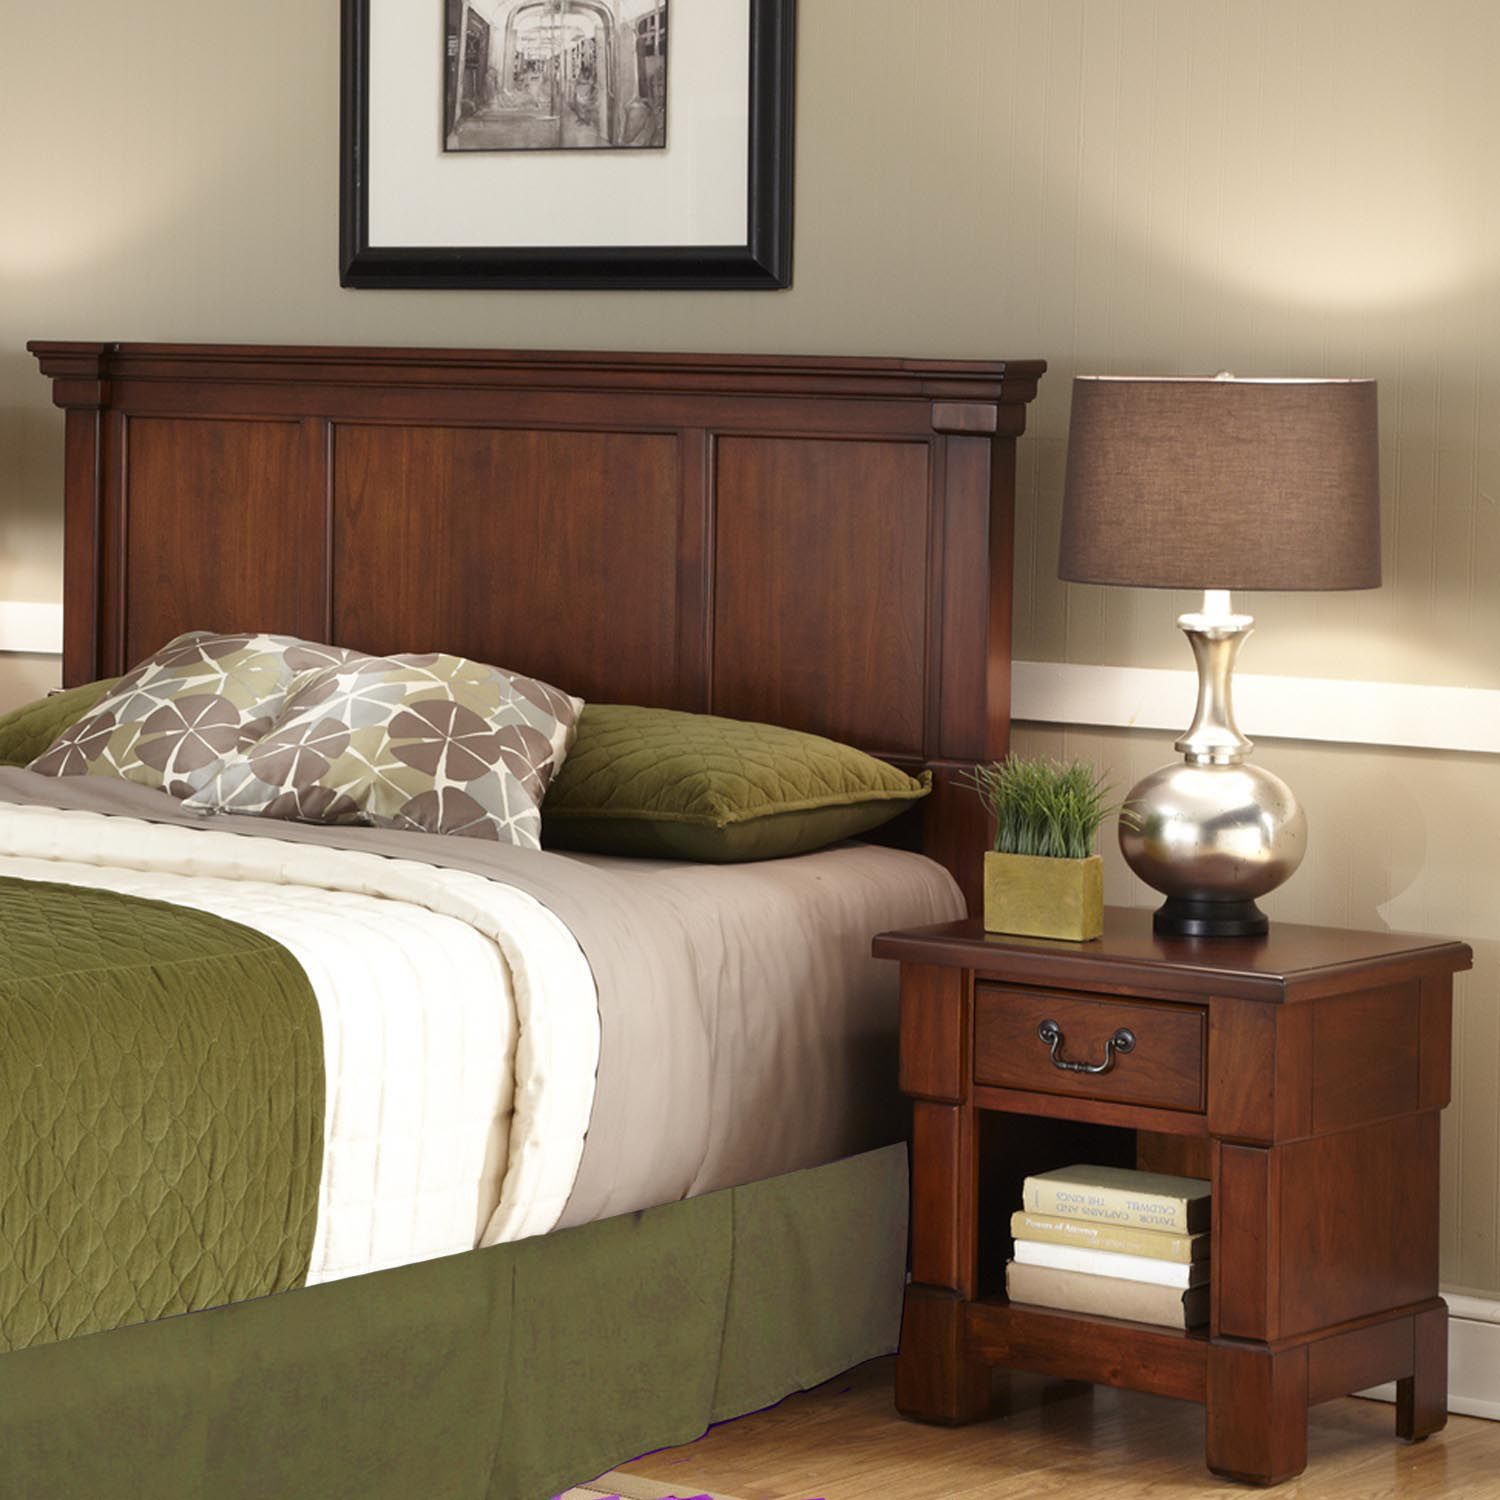 New Queen Full Headboard u Nightstand Set